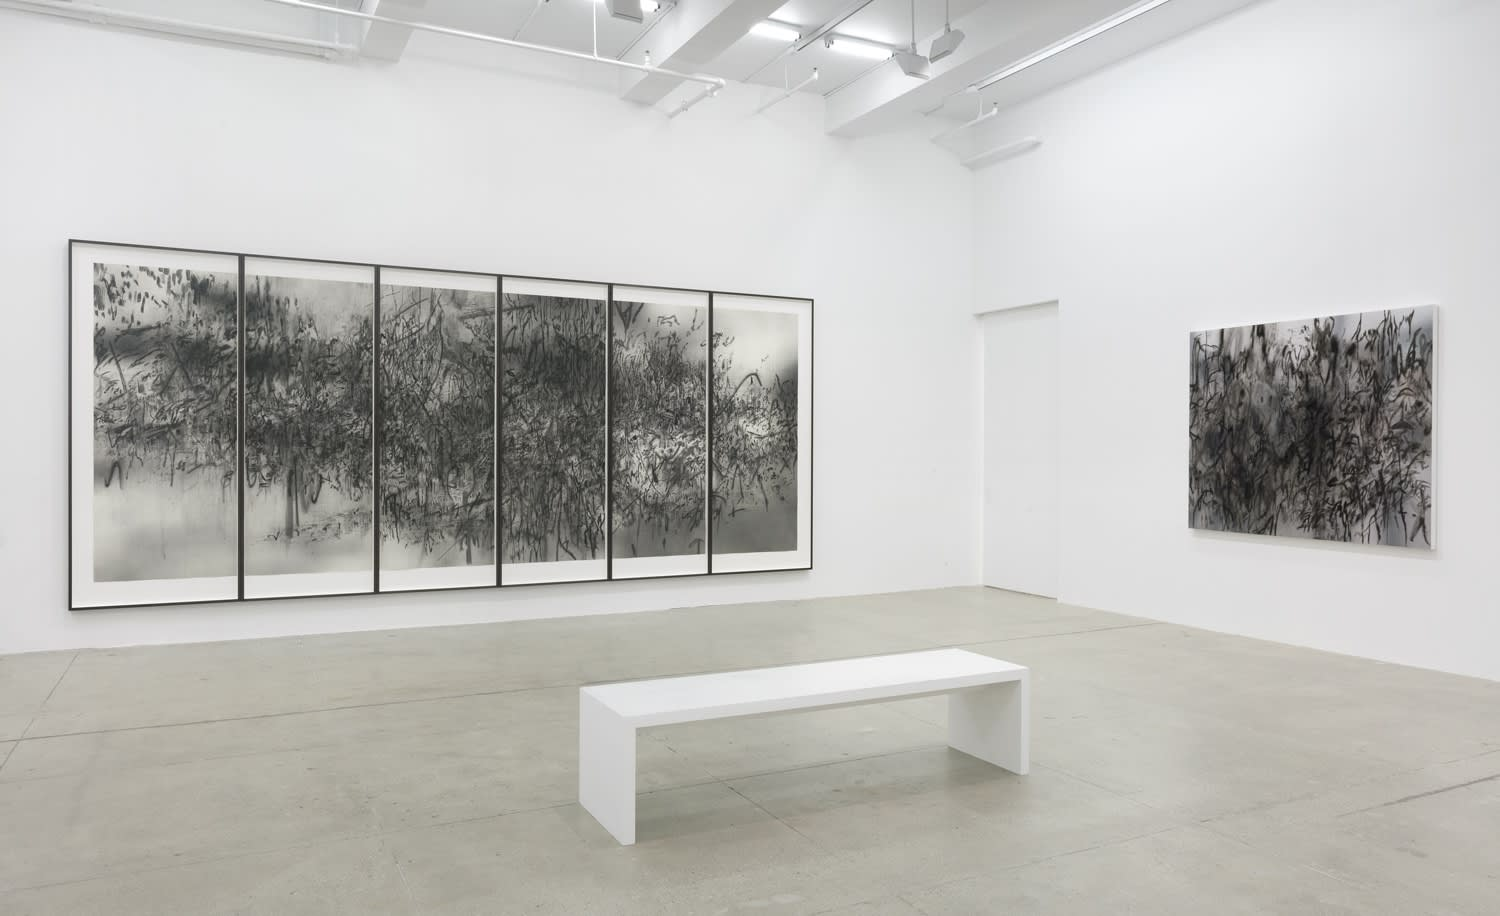 Black and white abstract drawings hang in multiple frames in a white gallery with a bench.